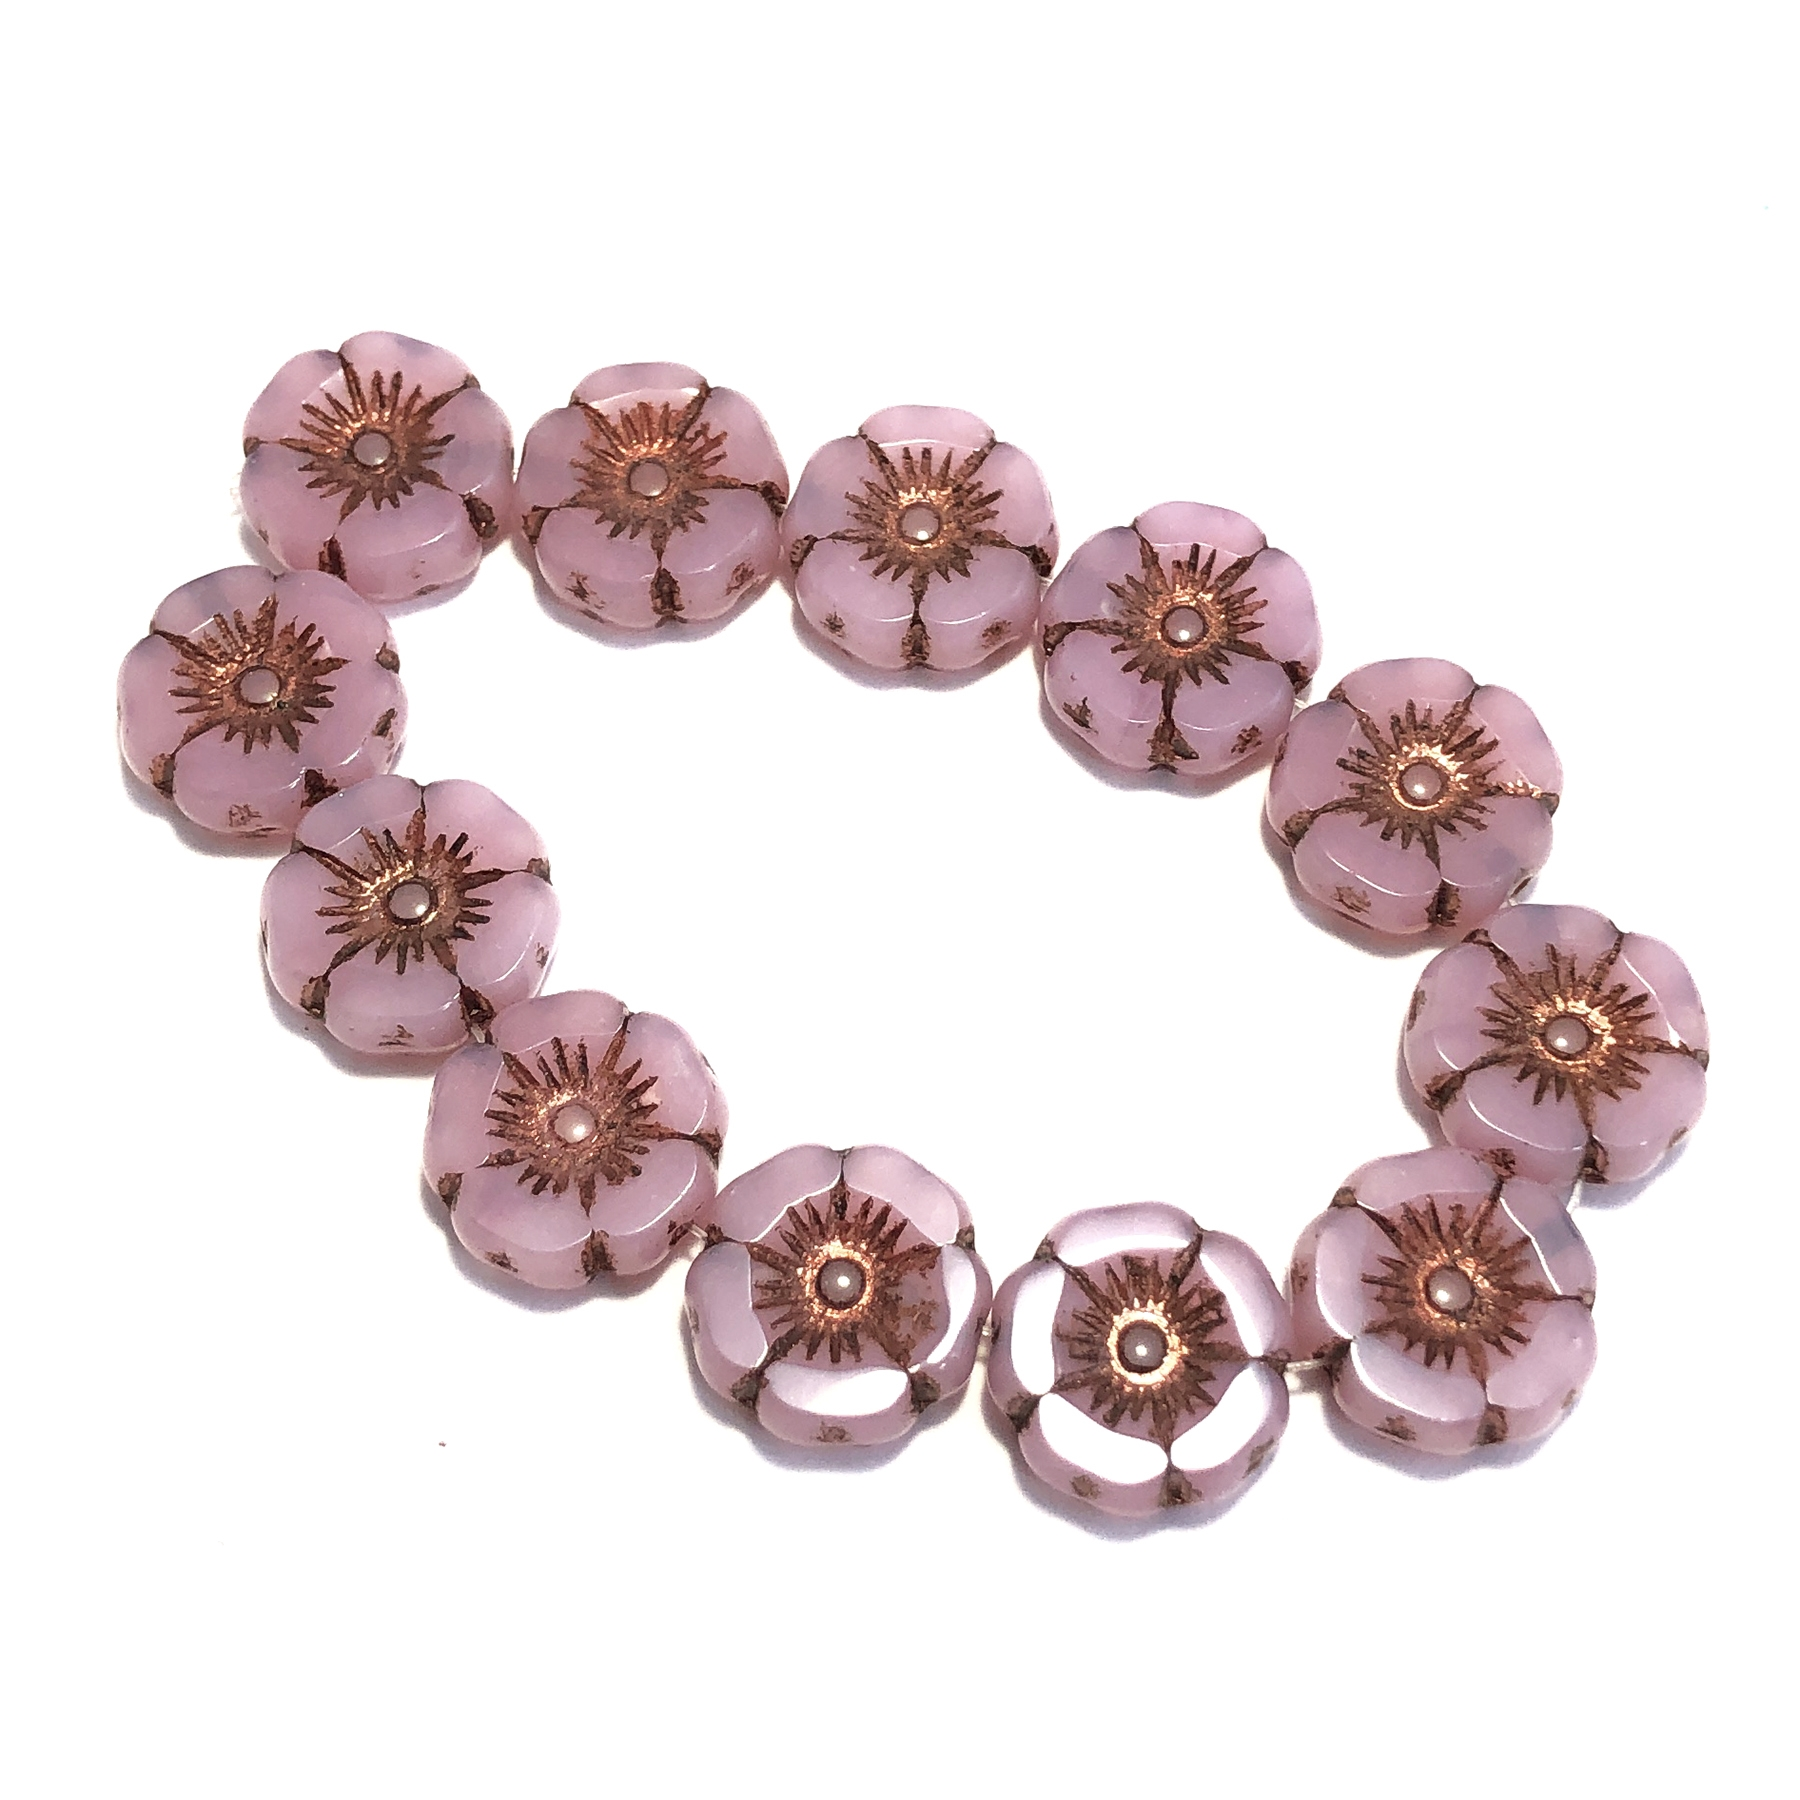 Dusty Rose With Copper Wash Hibiscus Flowers Glass Beads Floral